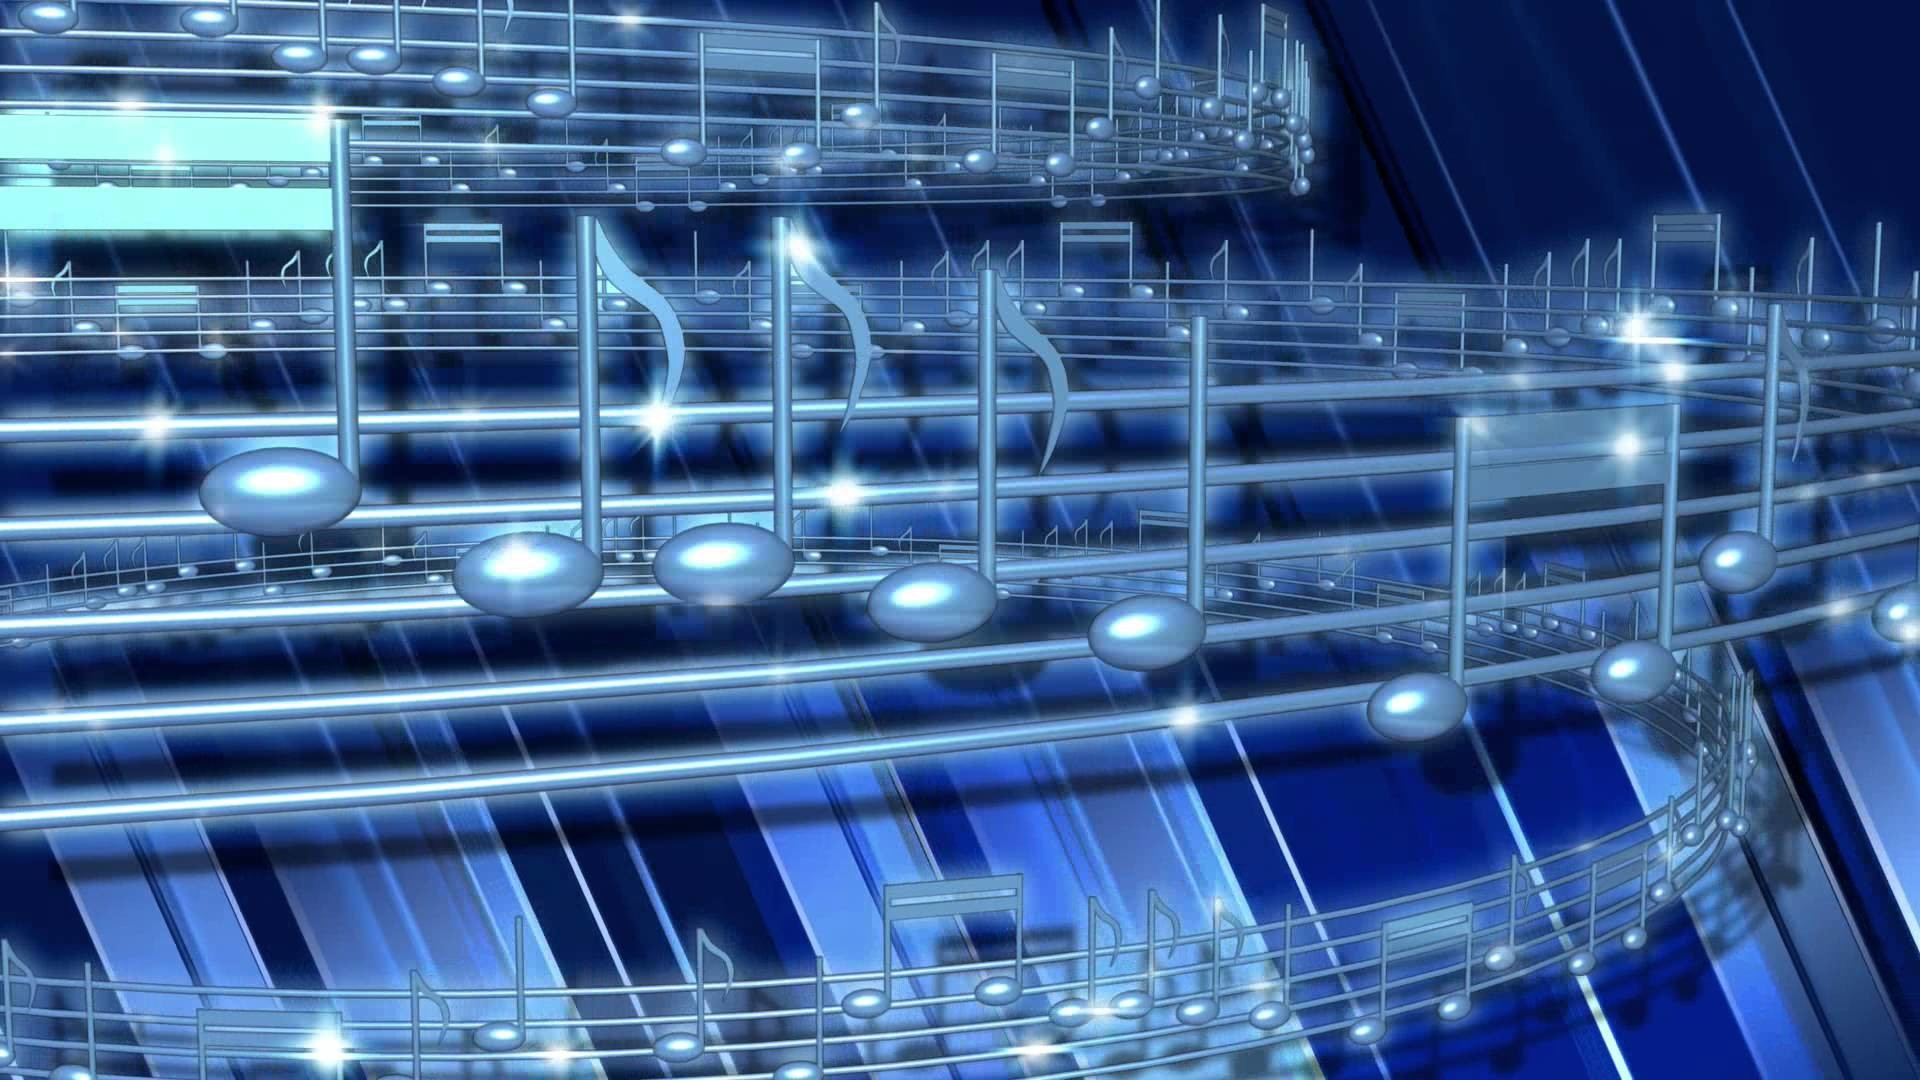 Blue Musical Notes Loop – Free Stock Video Footage – Free Stock Videos at  Videvo.net – YouTube